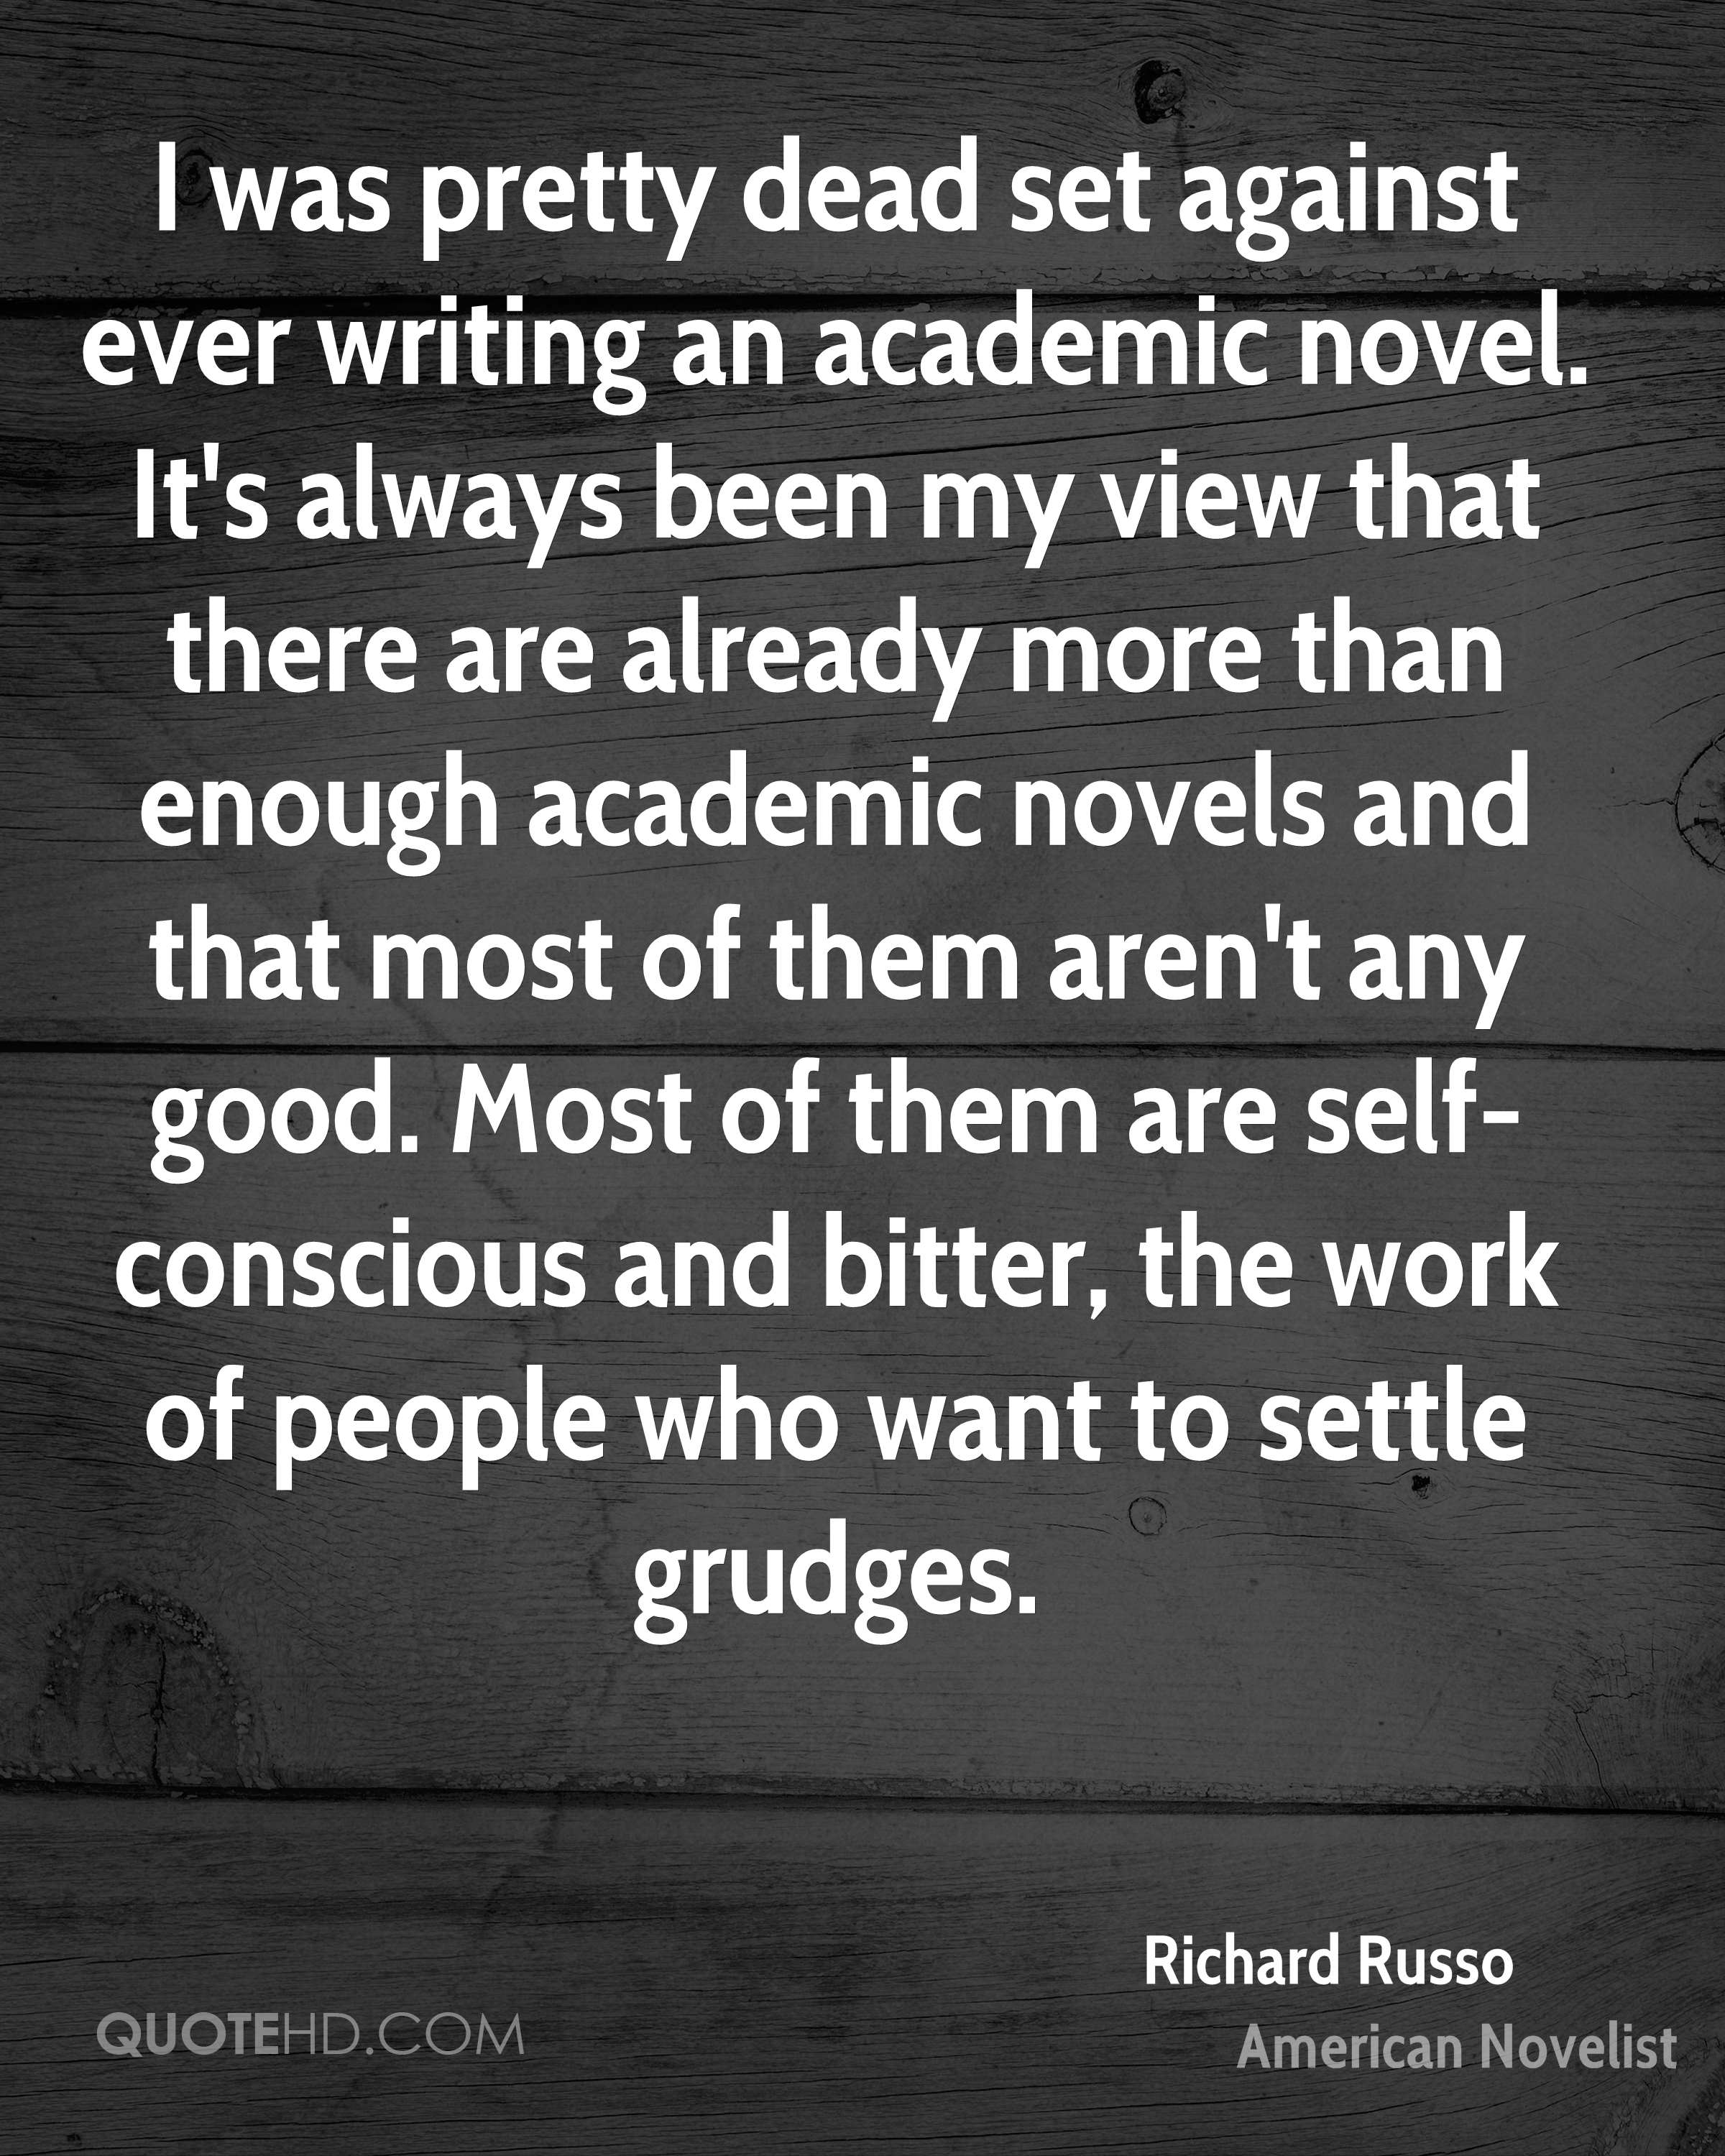 I was pretty dead set against ever writing an academic novel. It's always been my view that there are already more than enough academic novels and that most of them aren't any good. Most of them are self-conscious and bitter, the work of people who want to settle grudges.